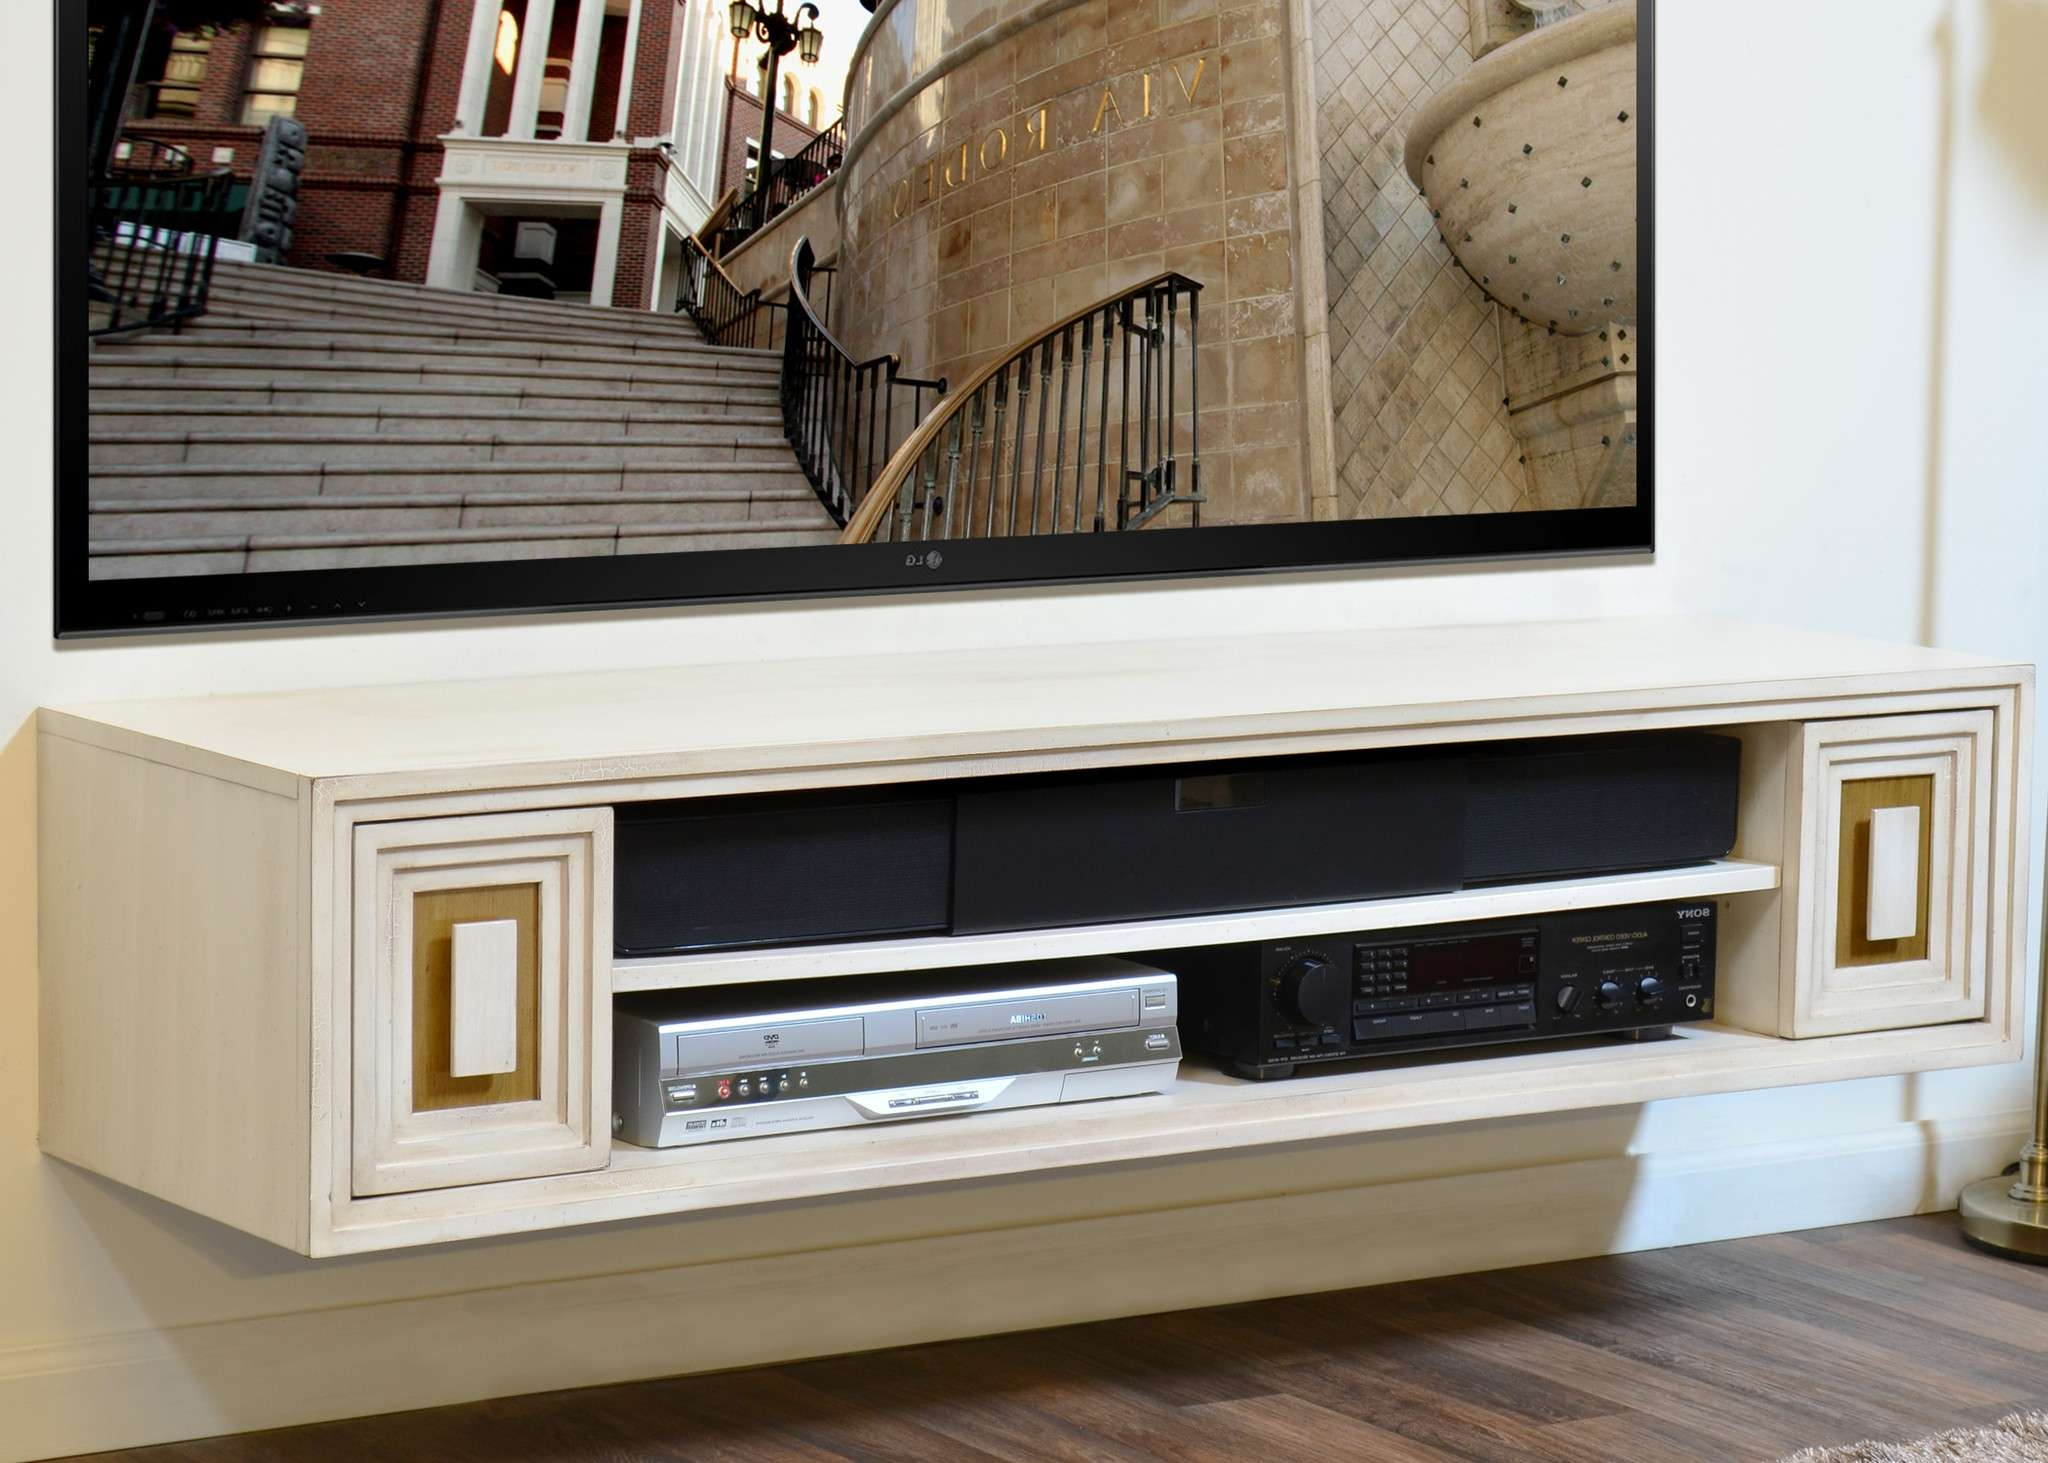 Gold Tv Cabinet – Cabinets Ideas Intended For Gold Tv Cabinets (View 3 of 20)